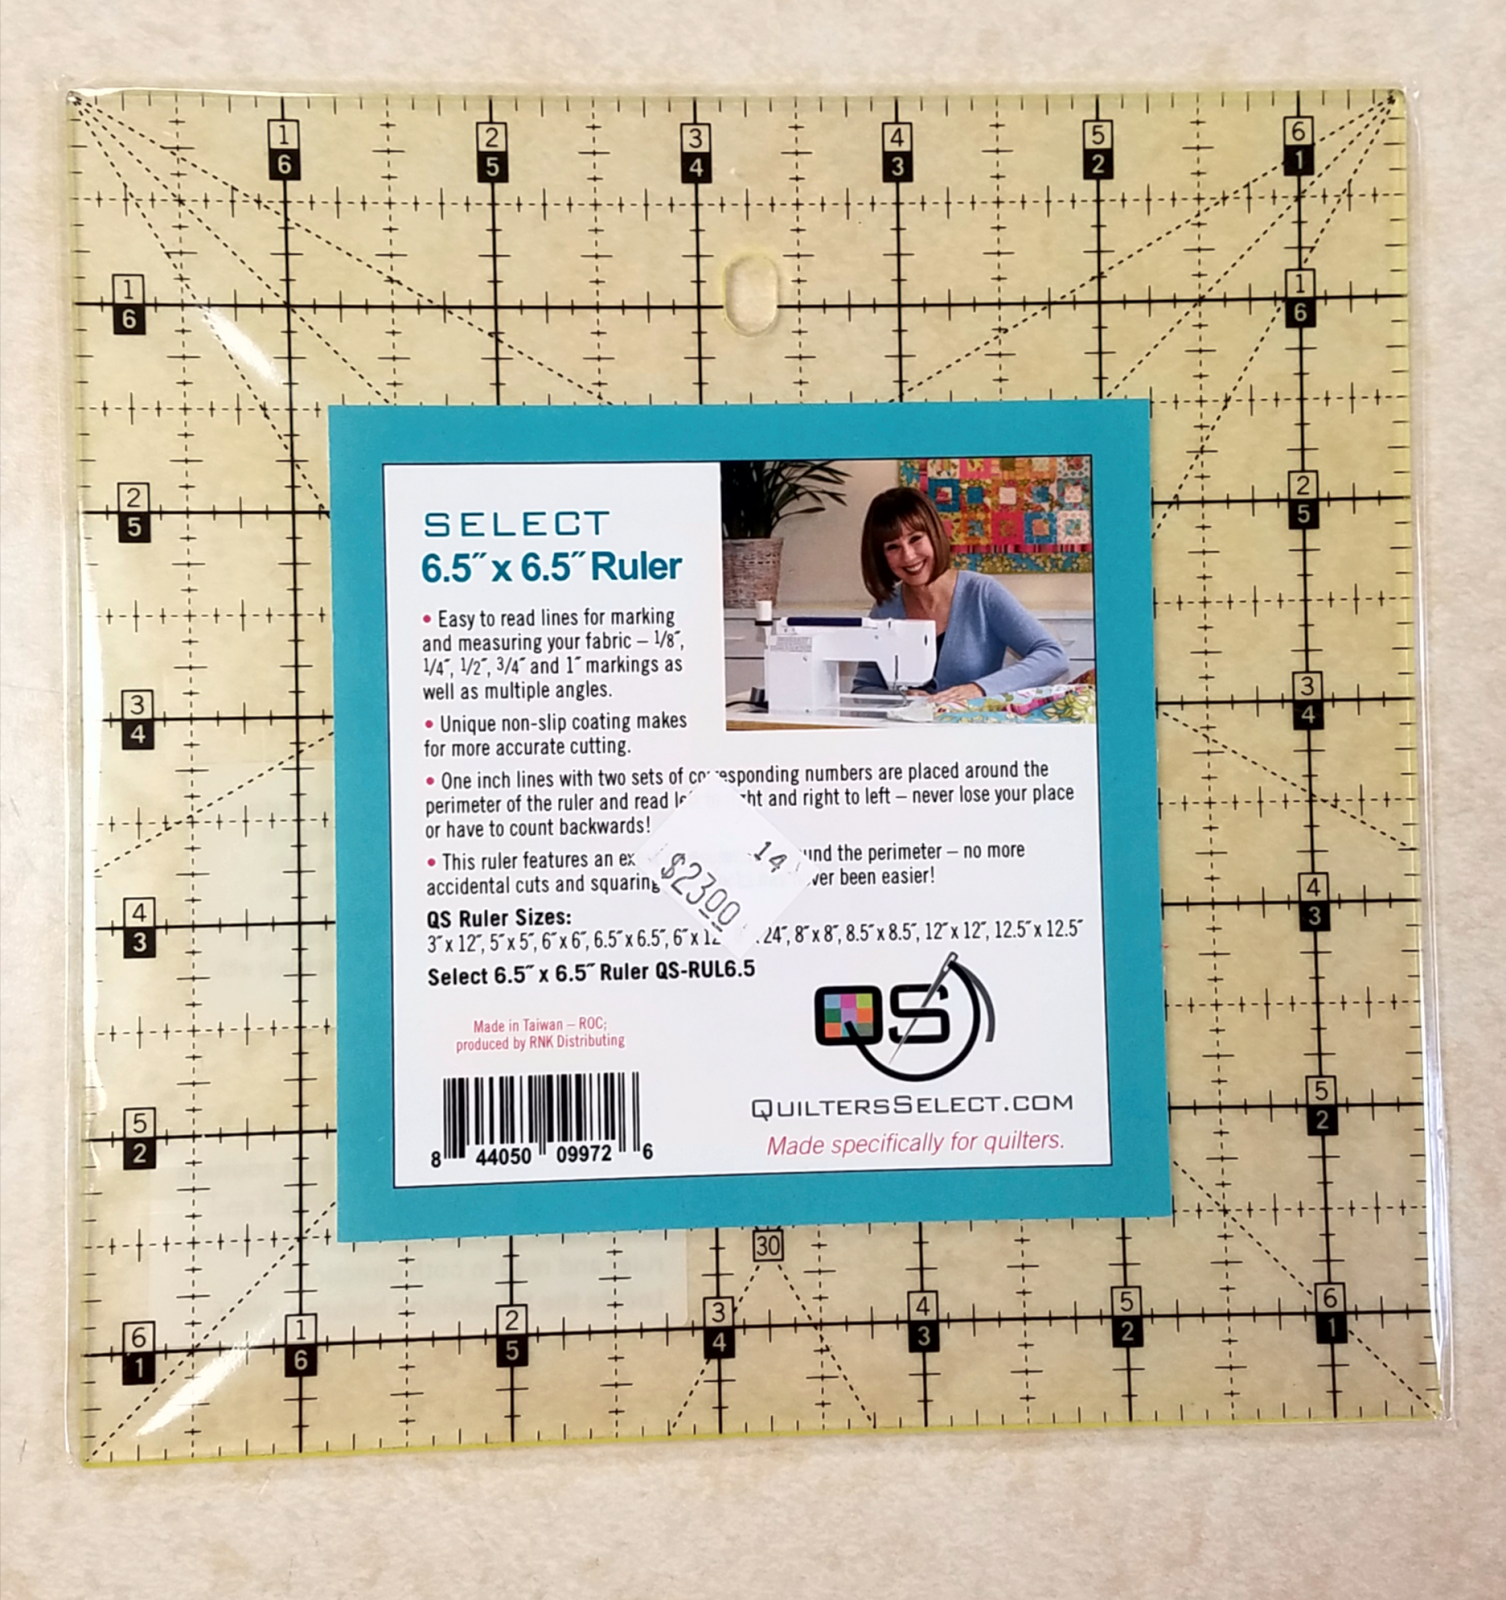 Quilter's Select Ruler 6.5 x 6.5